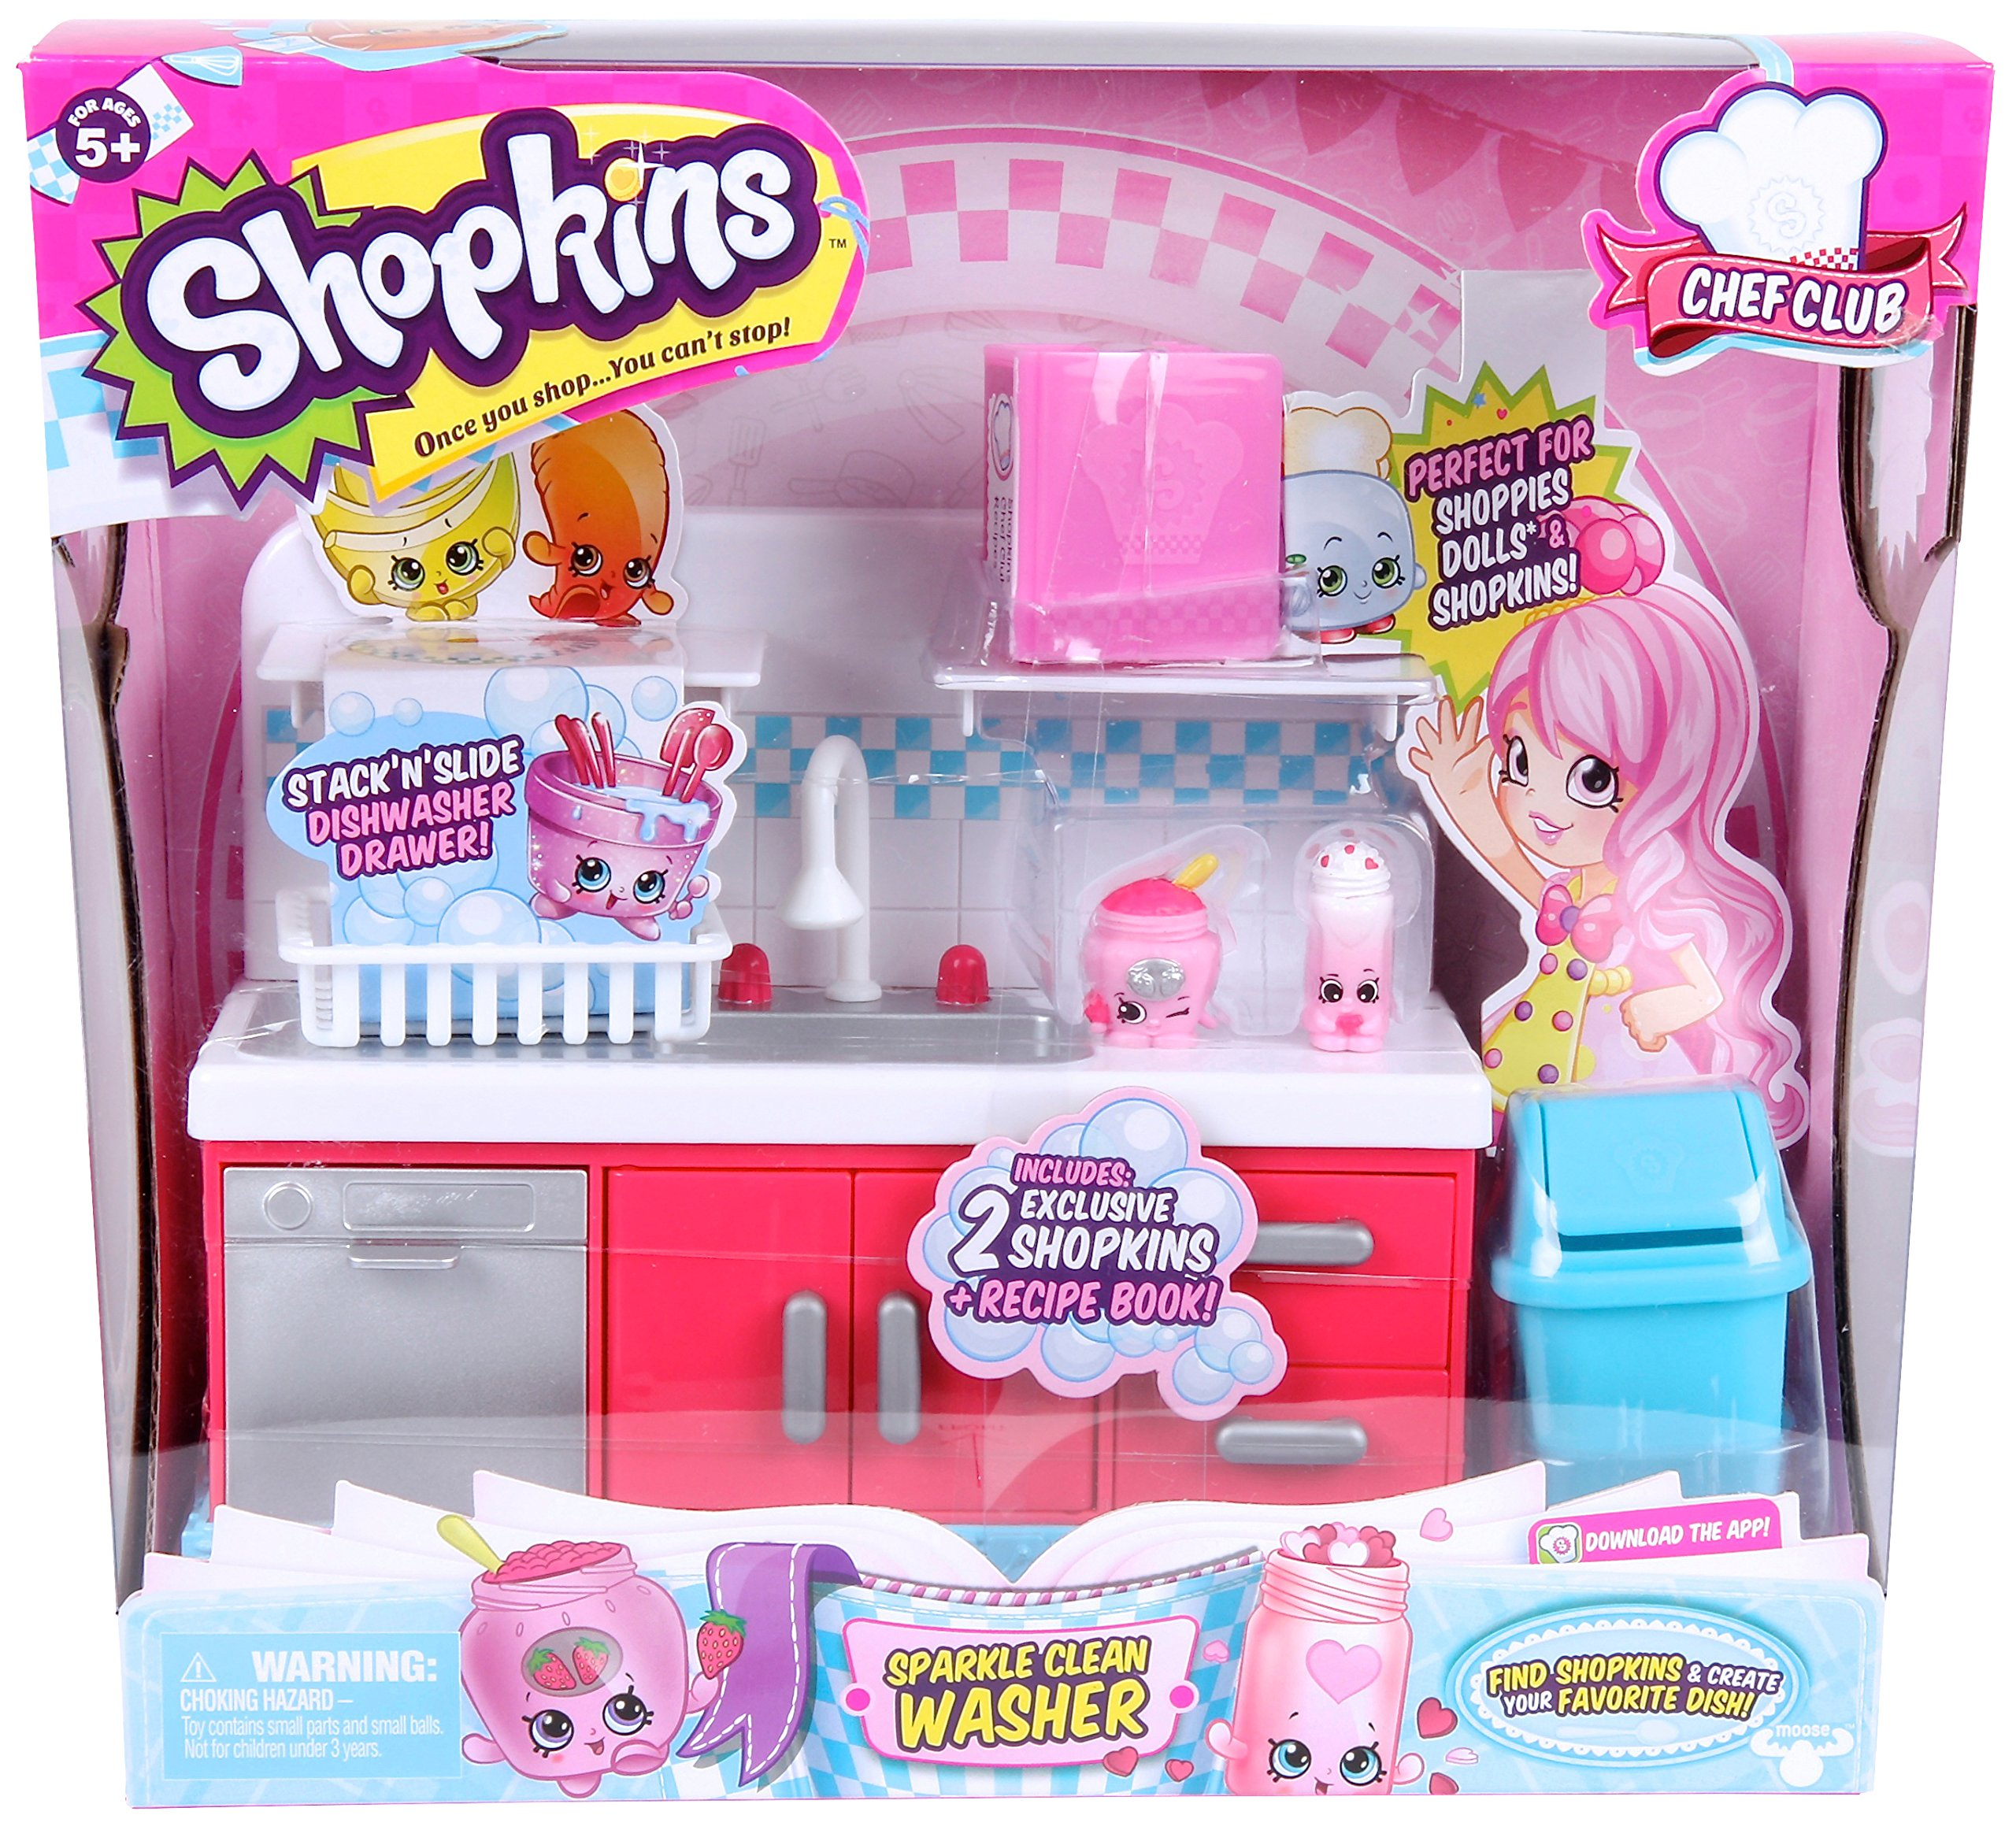 Amazon Shopkins Chef Club Sparkle Clean Washer Toys Games